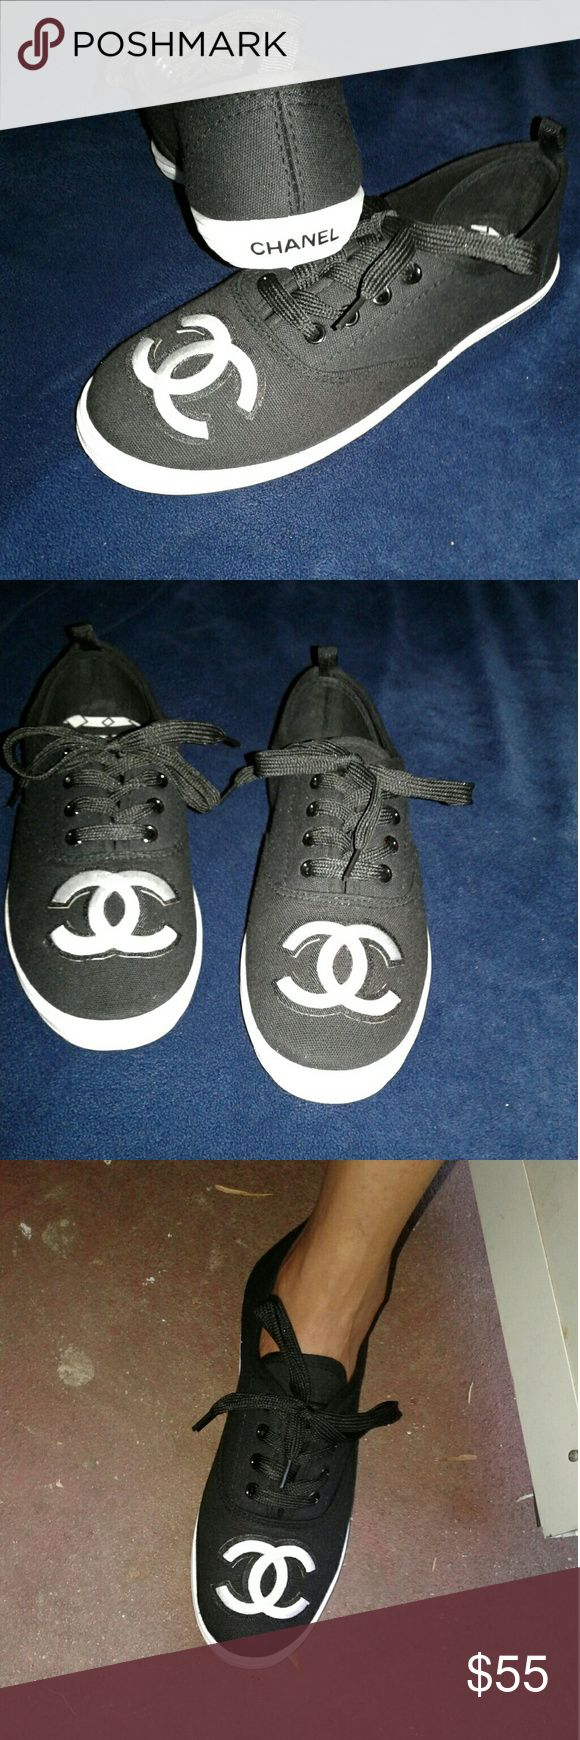 Cute Sneakers New. Size 7. Designer style..  Goes great with skinny jeans or shorts. Perfect for spring and summer. Comfy and stylish!  Great for the price.  True to size! CHANEL Shoes Sneakers